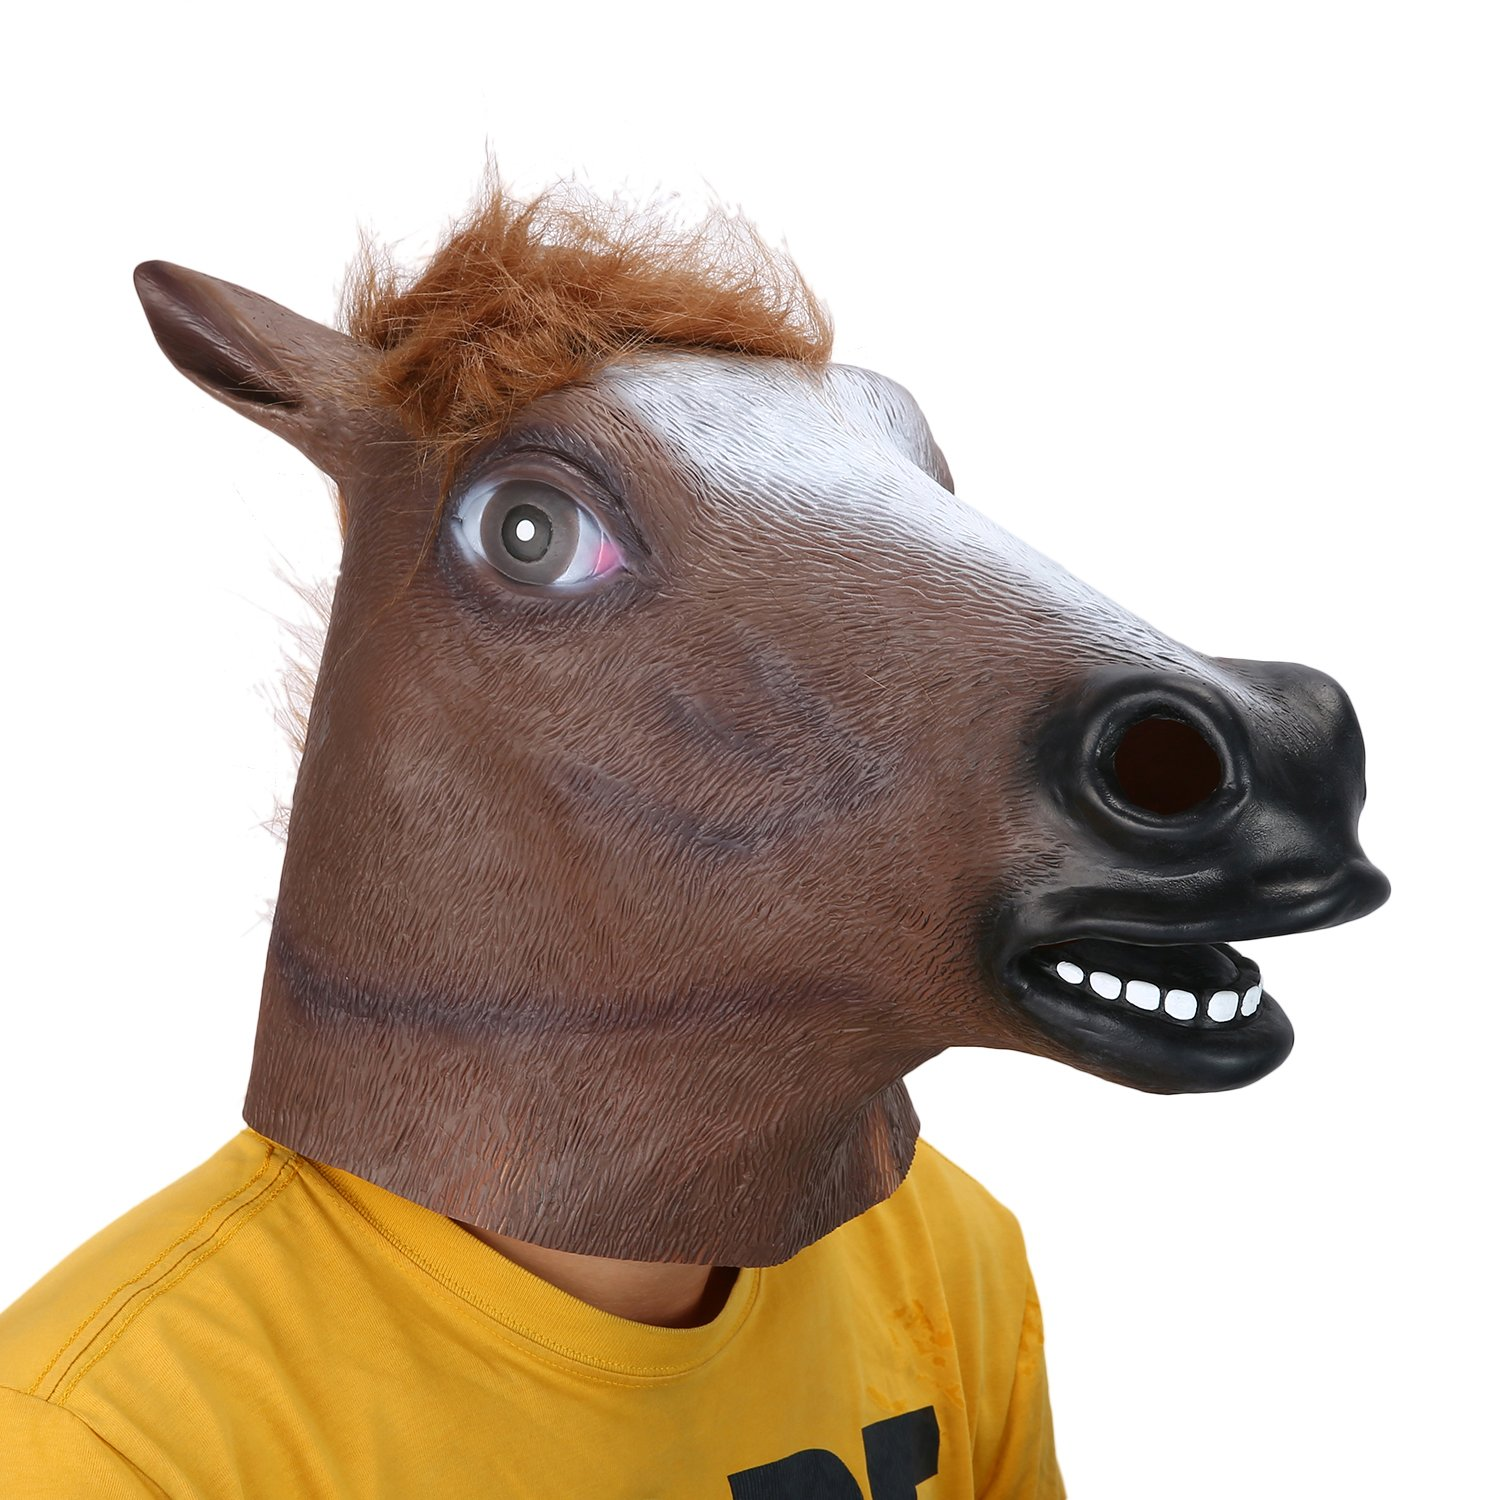 Amazon.com: Leegoal Novelty Latex Horse Head Mask Gangnam Style ...